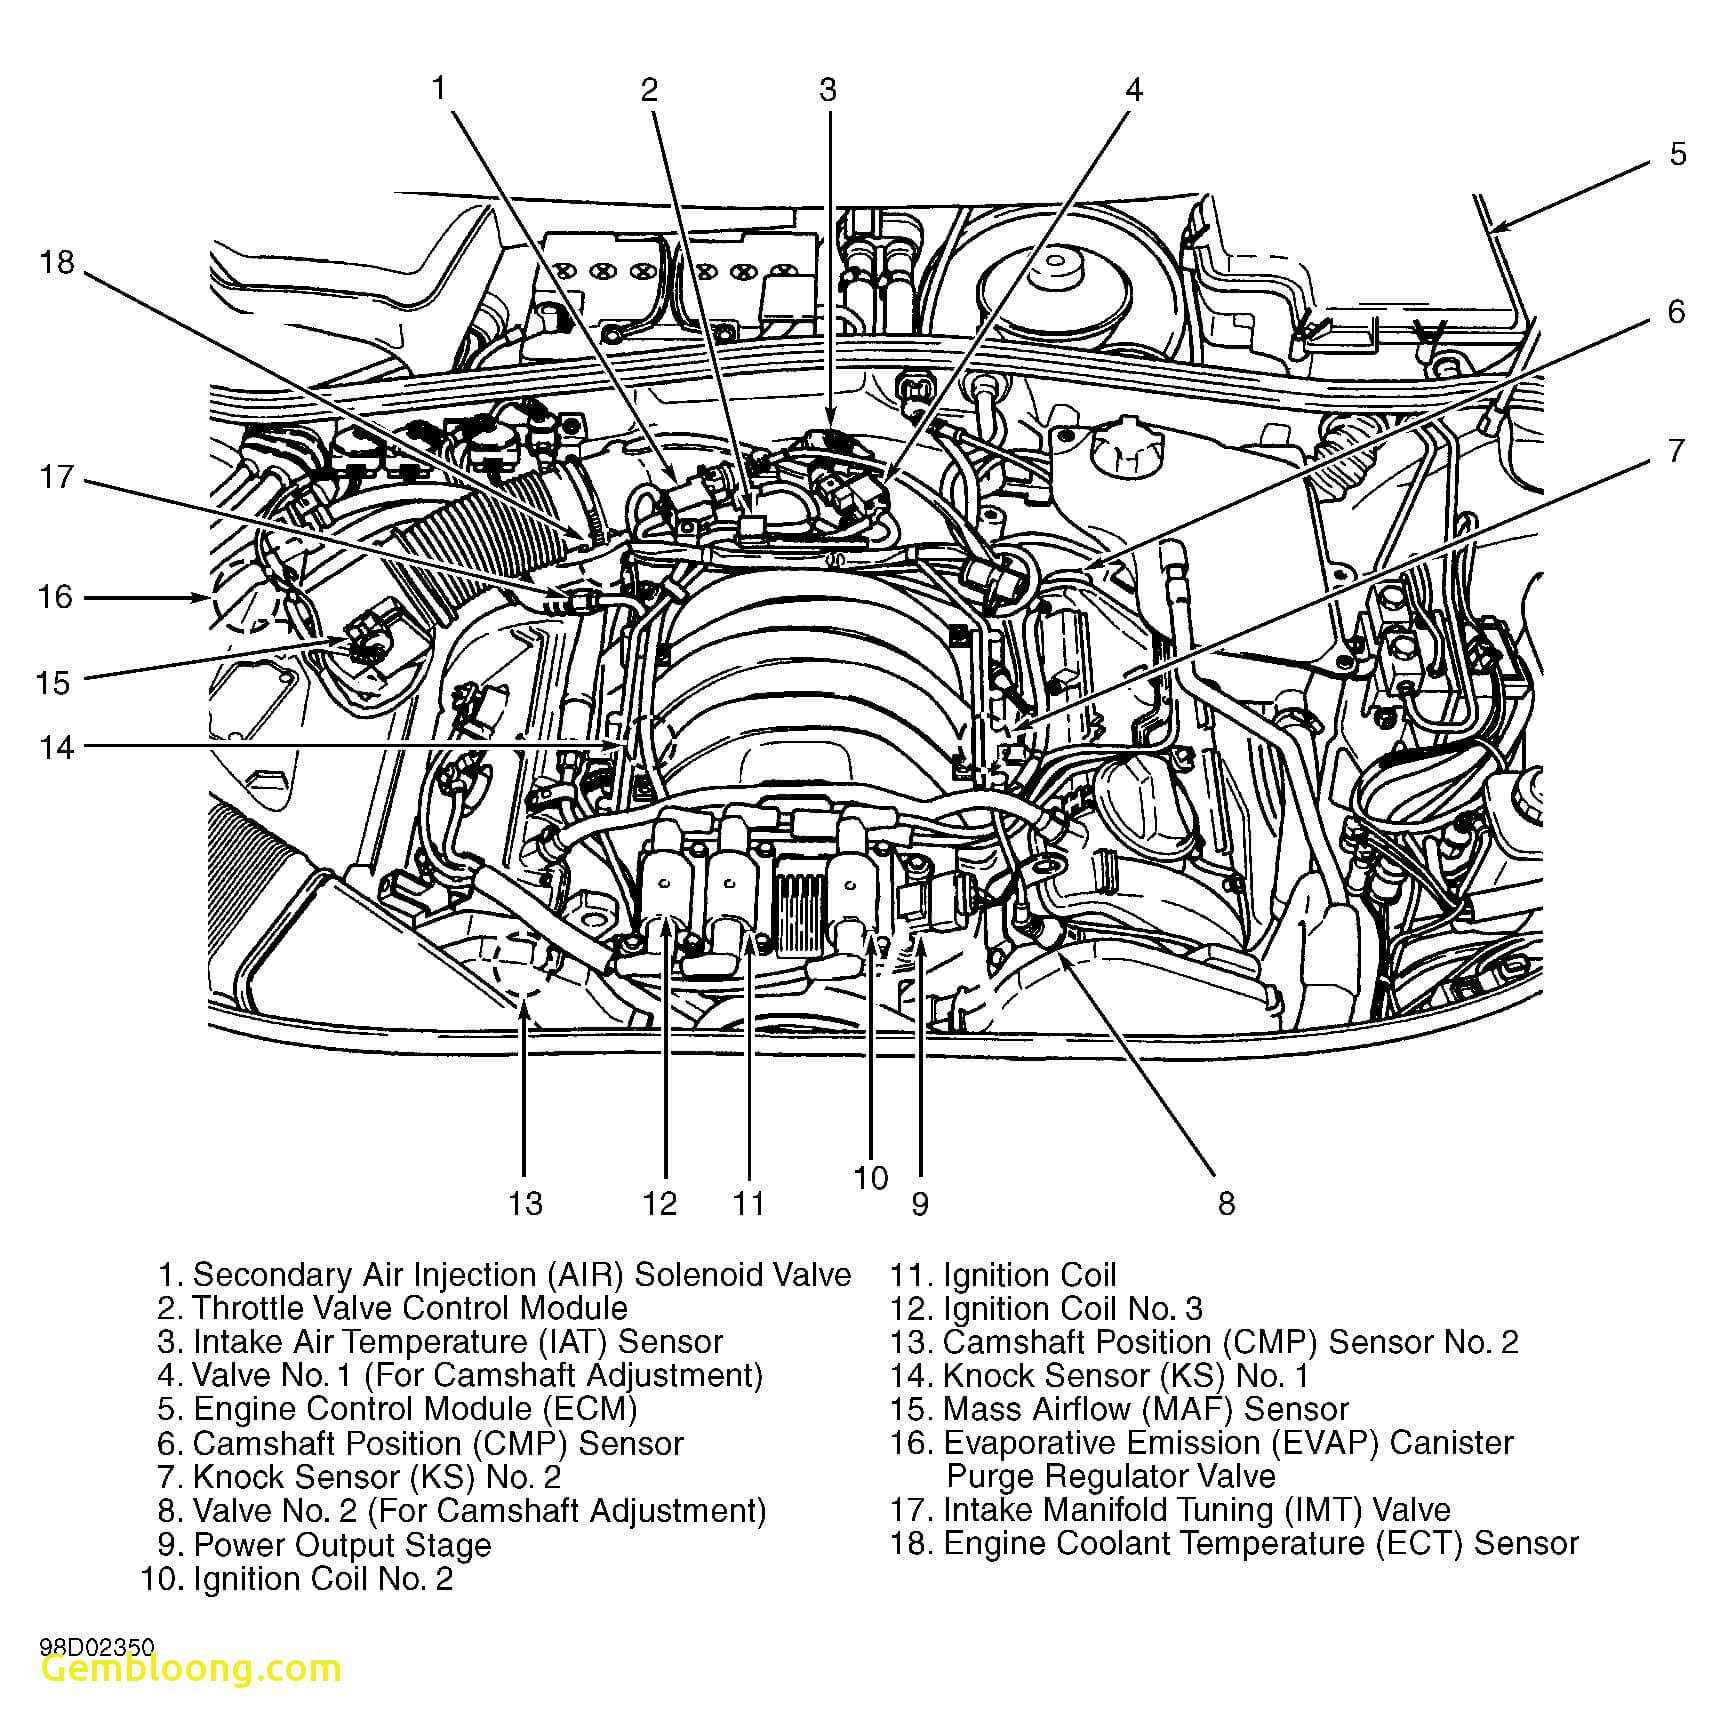 Here's among the best free car engine diagrams you can